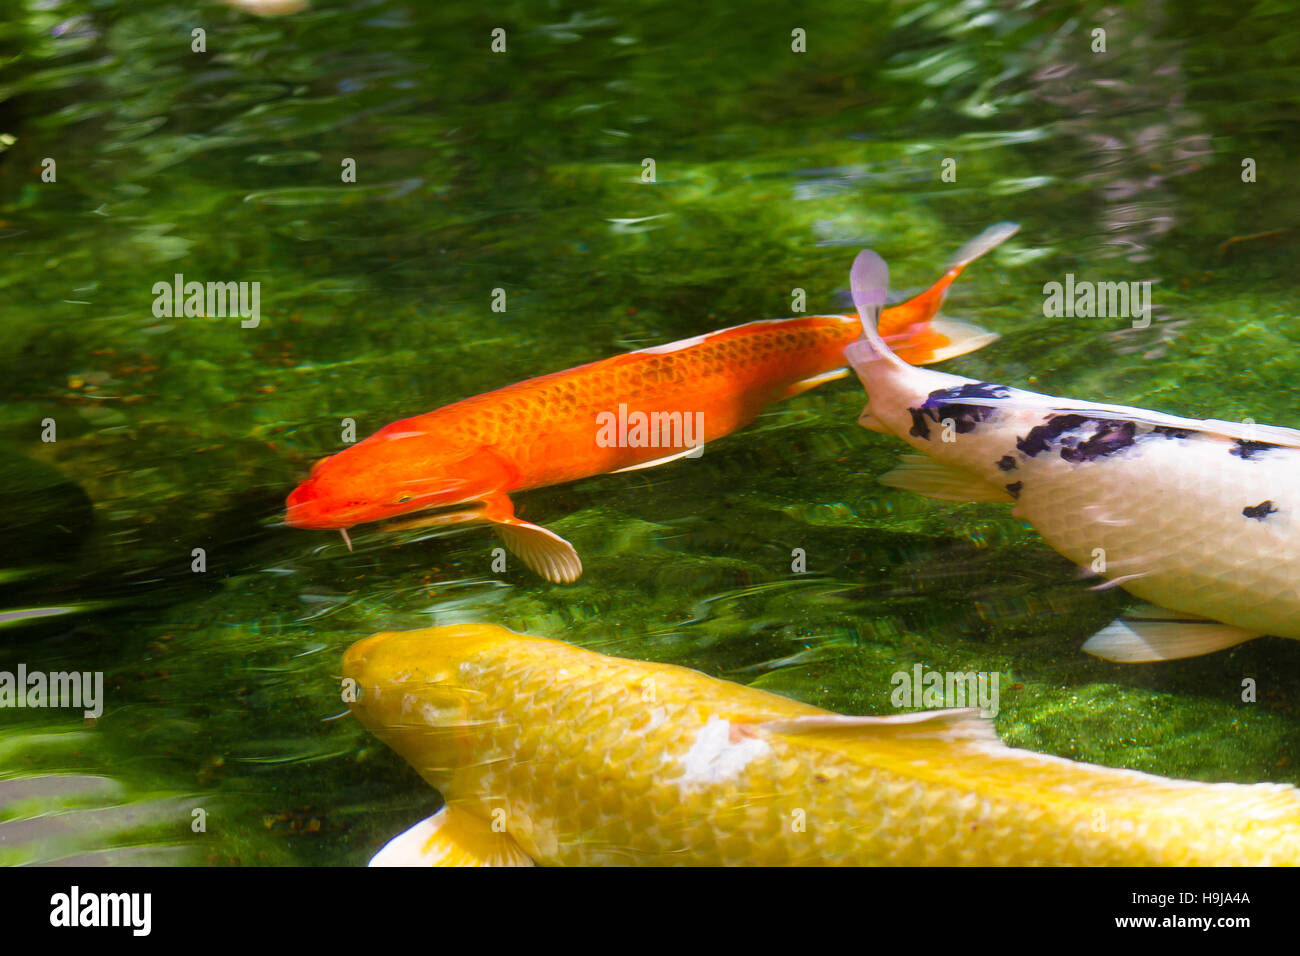 Three Koi fish (carp) red, yellow and white in green shalow lake with cristal water - Stock Image